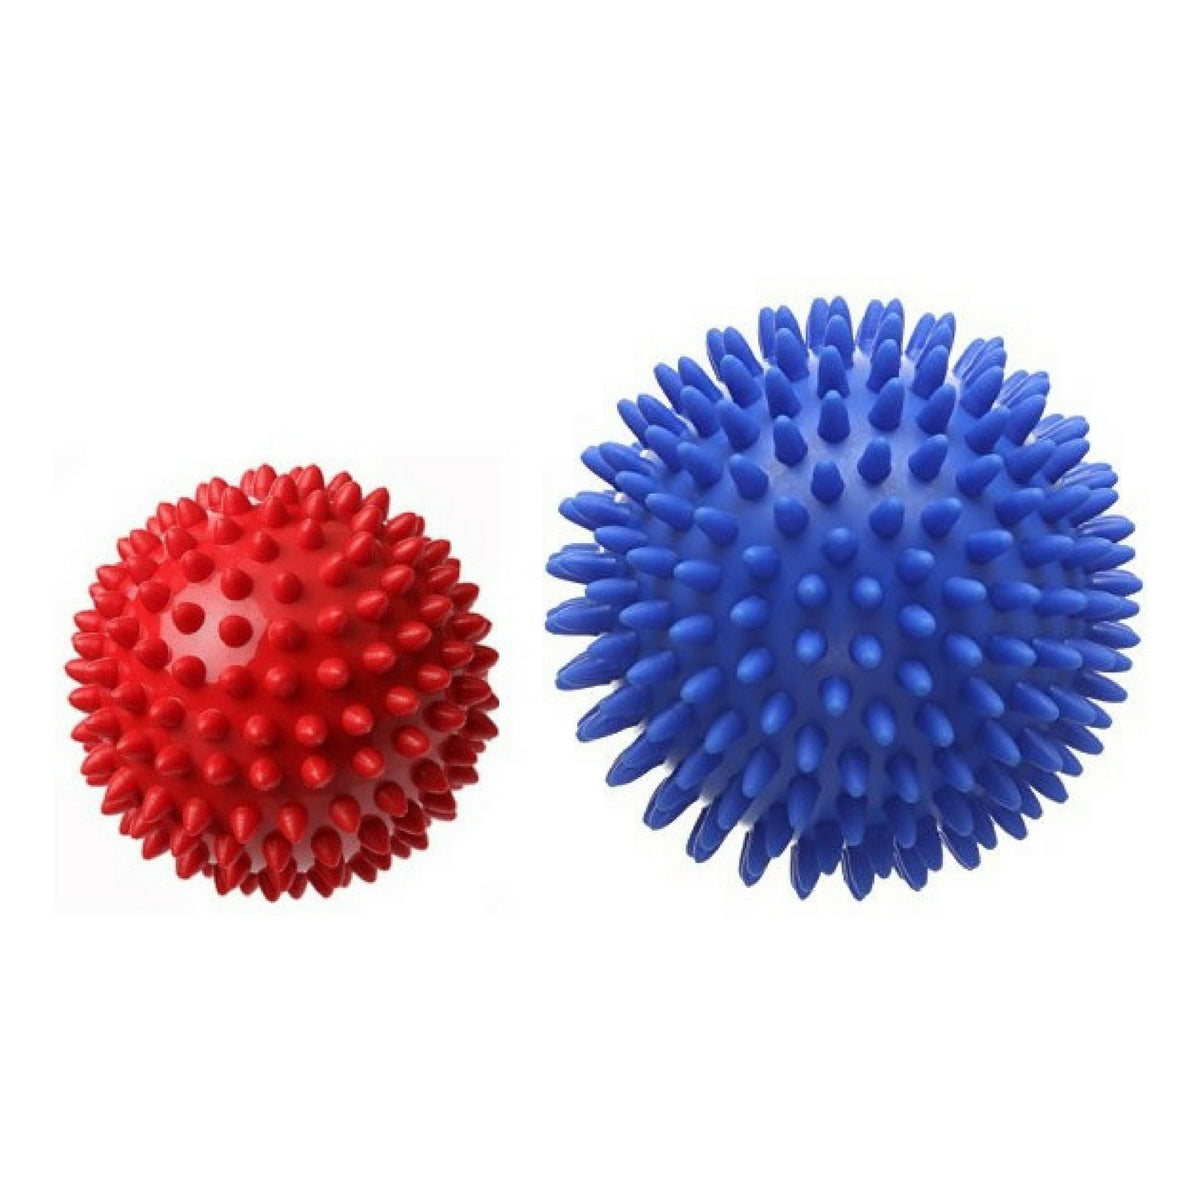 Medalist Firm Massage Balls (2 piece set)